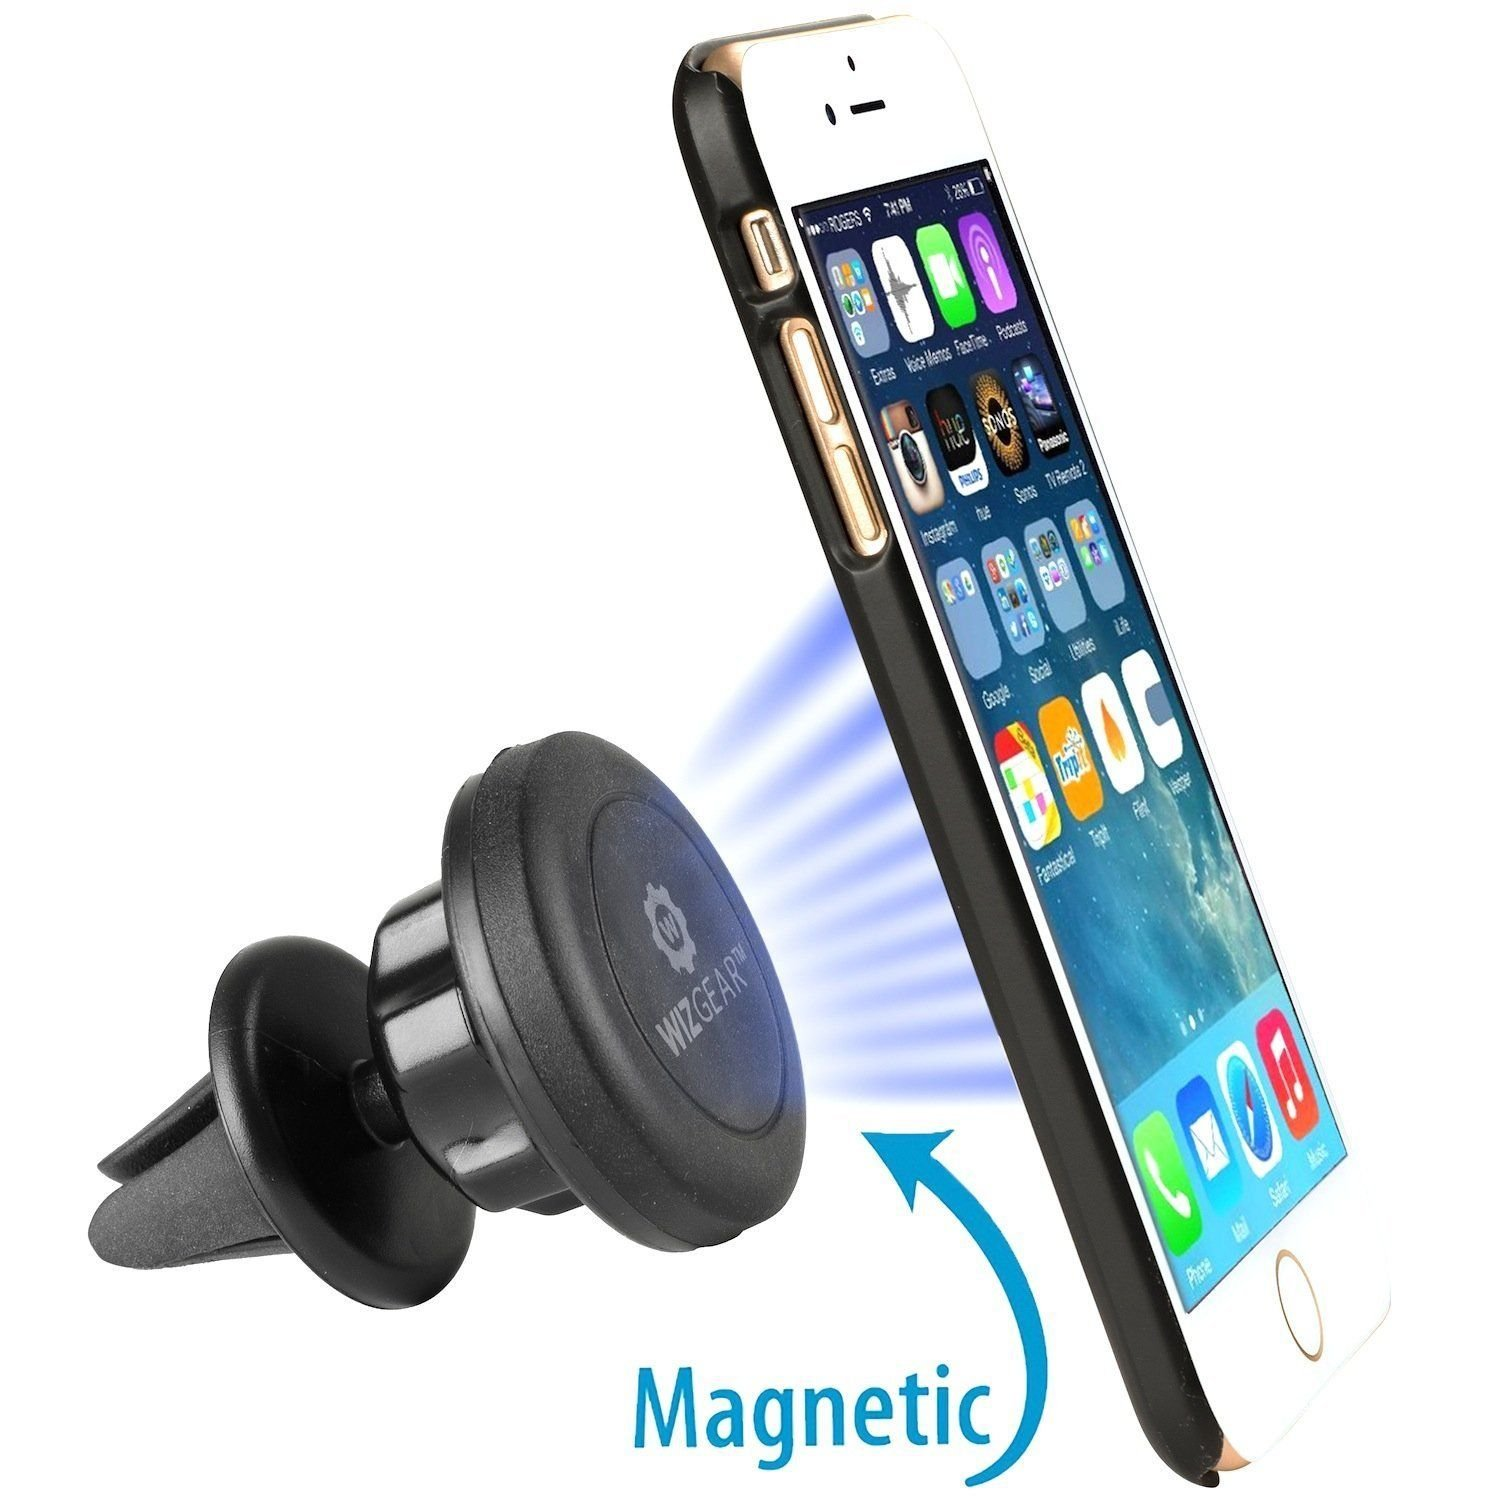 WizGear Universal Air Vent Magnetic Car Mount Holder for Cell Phones and Mini Tablets with Fast Swift-Snap Technology Magnetic Cell Phone Mount with Swivel Head UG-air-vent-Magnetic-mount